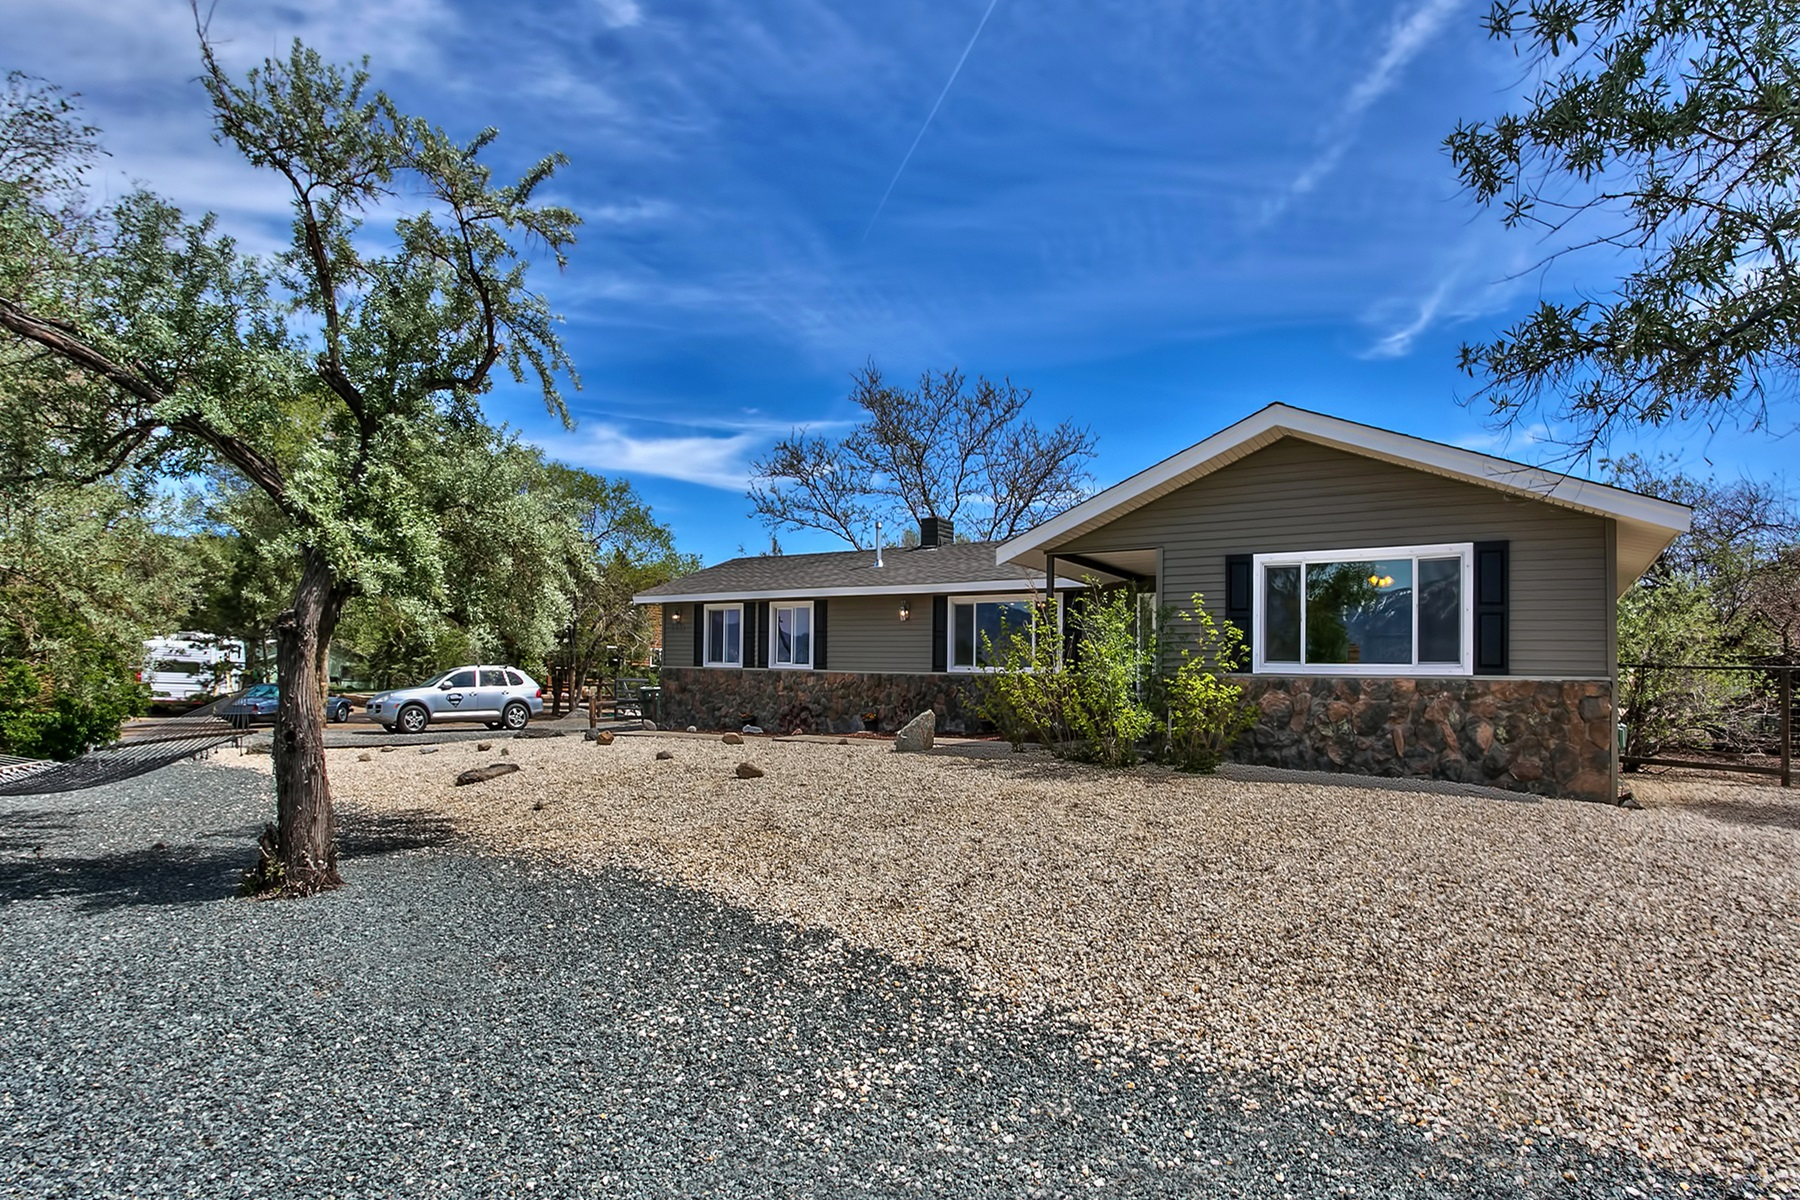 Single Family Home for Sale at 2653 Fuller Avenue Minden, Nevada, 89423 United States